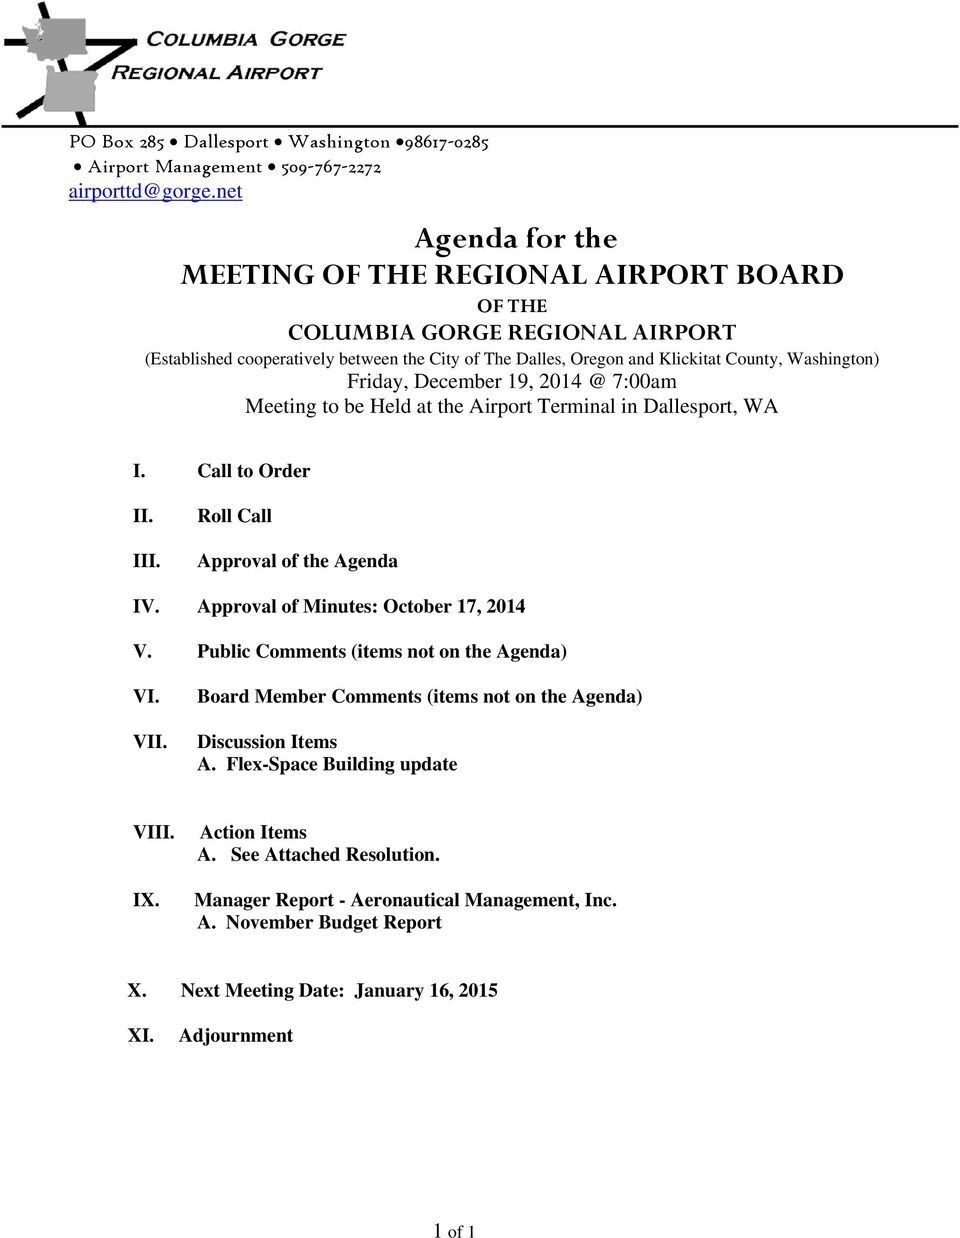 Friday, December 19, 2014 @ 7:00am Meeting to be Held at the Airport Terminal in Dallesport, WA I. Call to Order II. III. Roll Call Approval of the Agenda IV. Approval of Minutes: V.